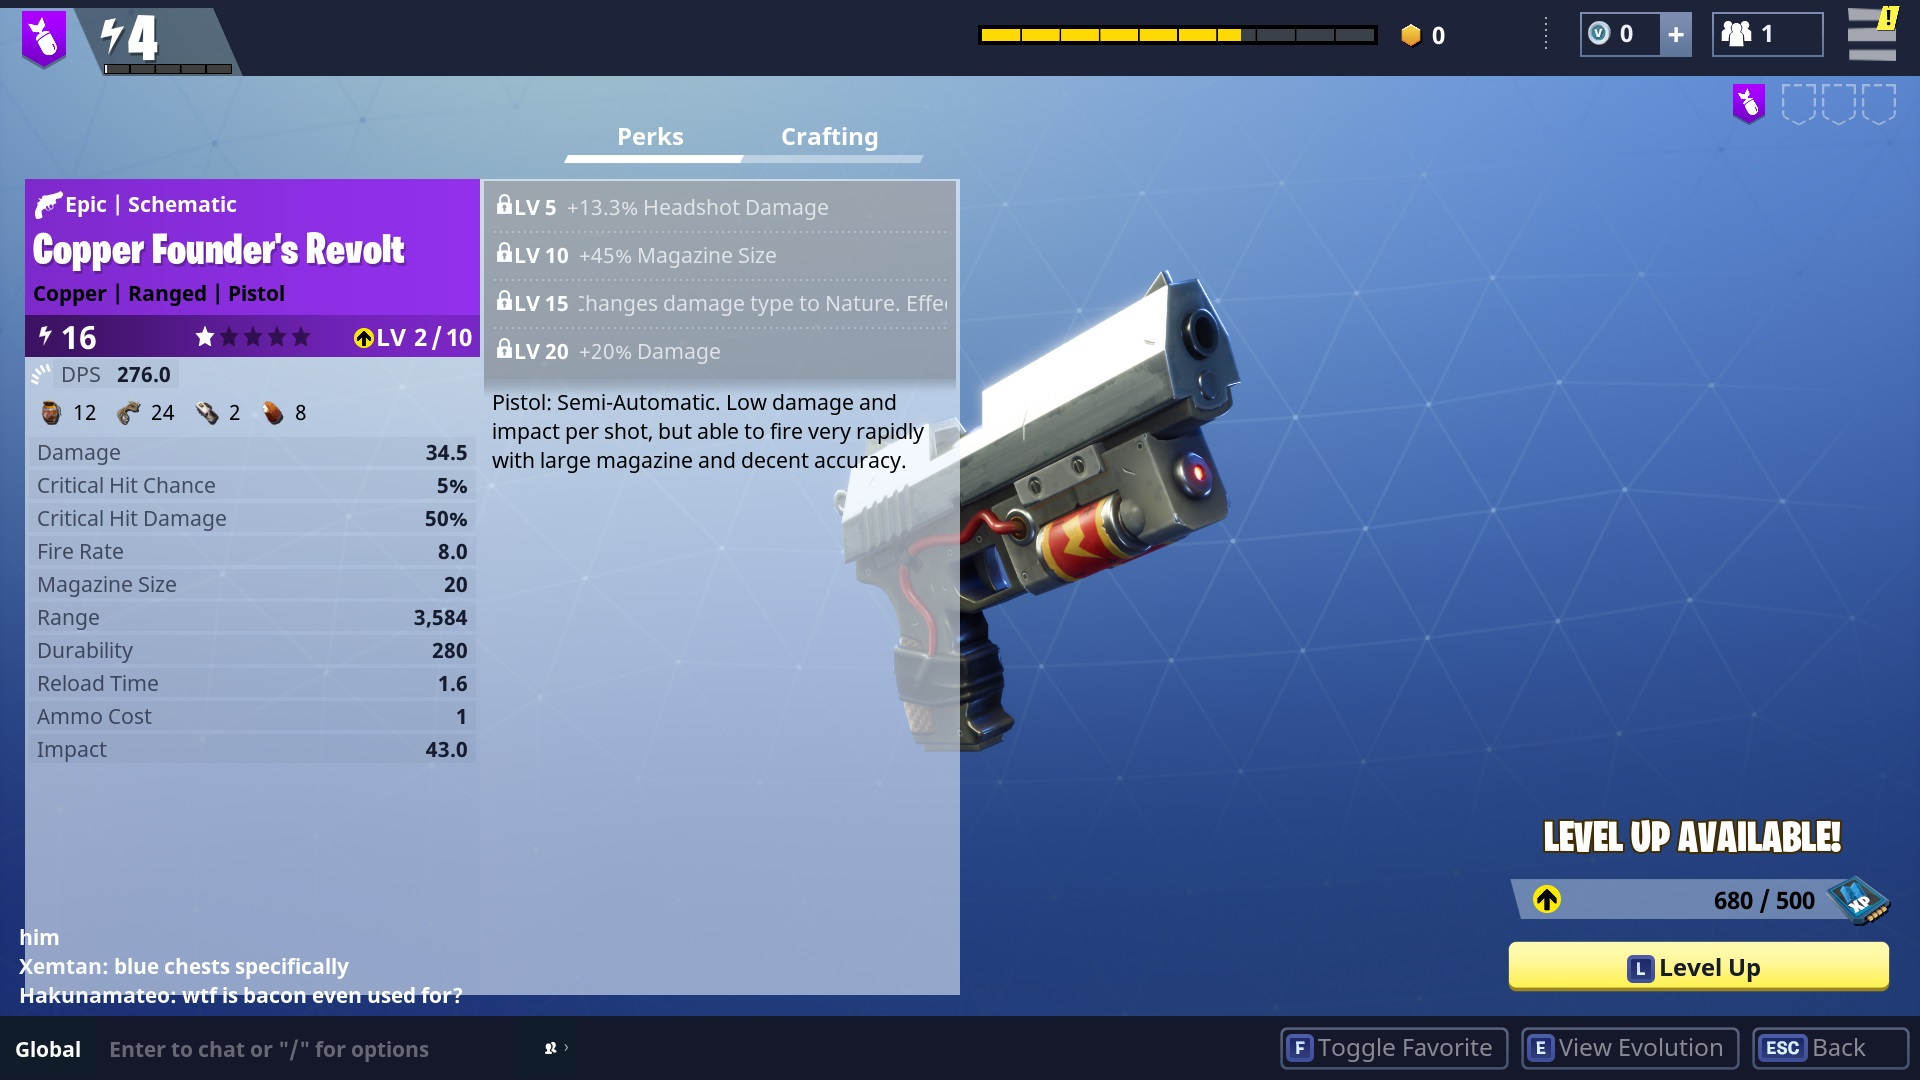 when you collect enough schematic xp you can use them to level up your favorite - how do you earn xp in fortnite